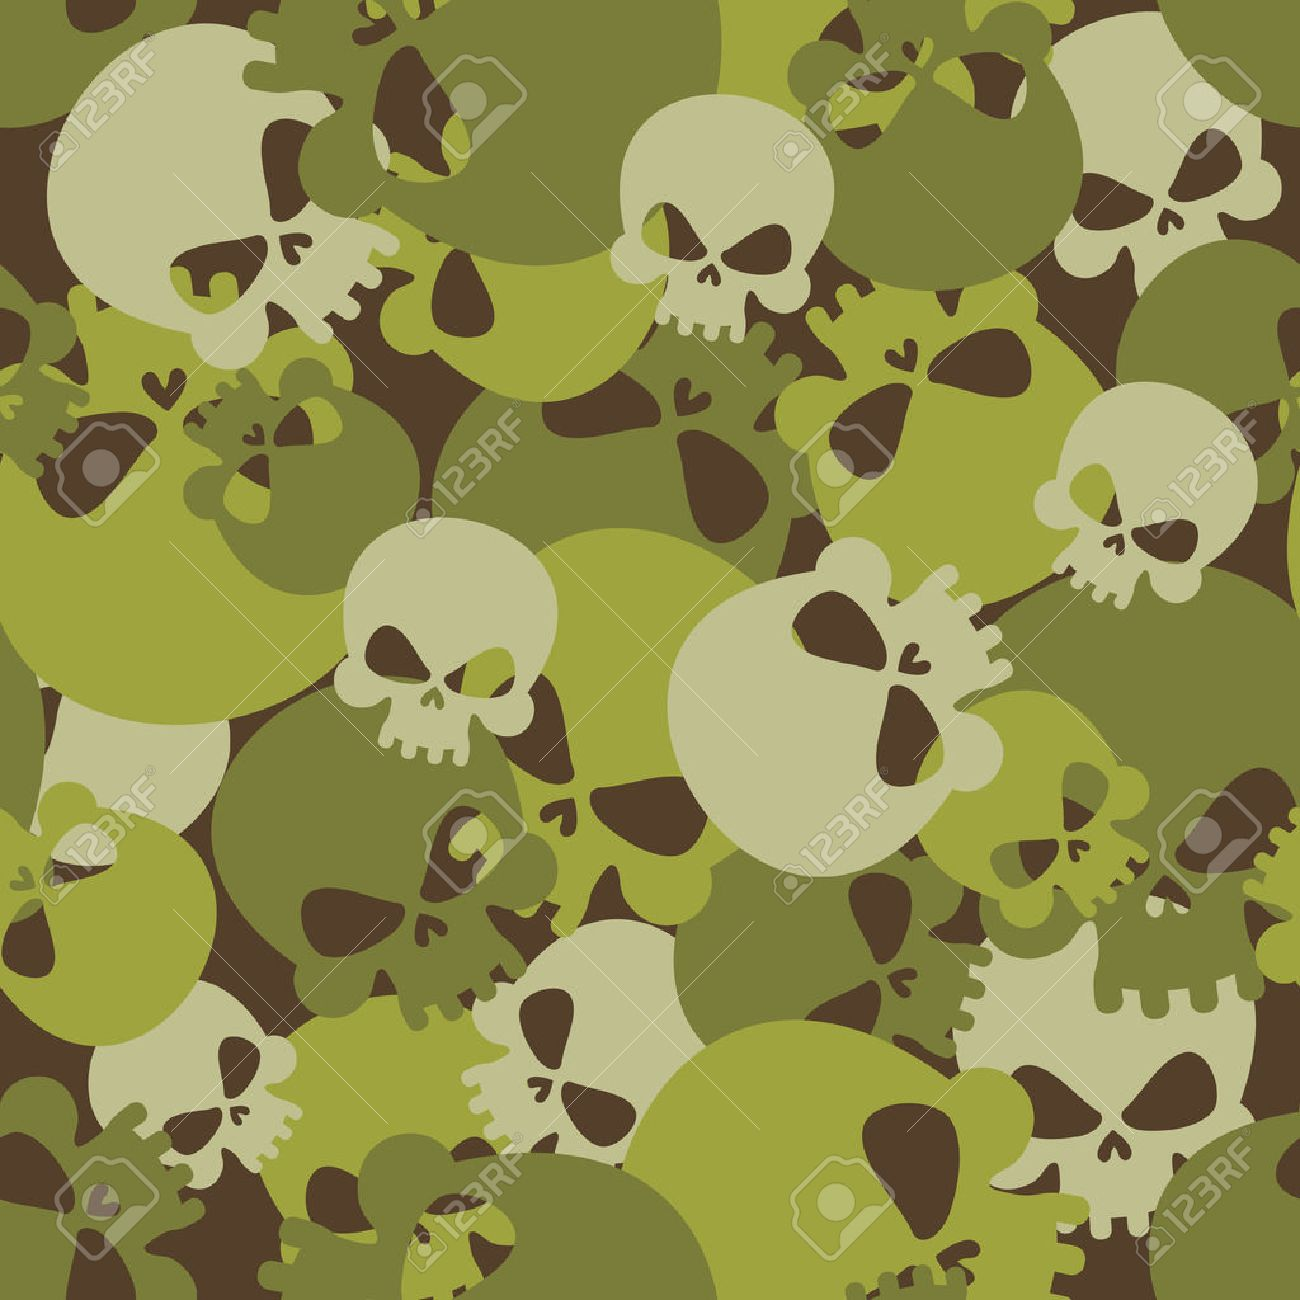 Military texture of skulls. Camouflage army seamless pattern from head skeletons. Scary seamless background for soldiers. - 43815257